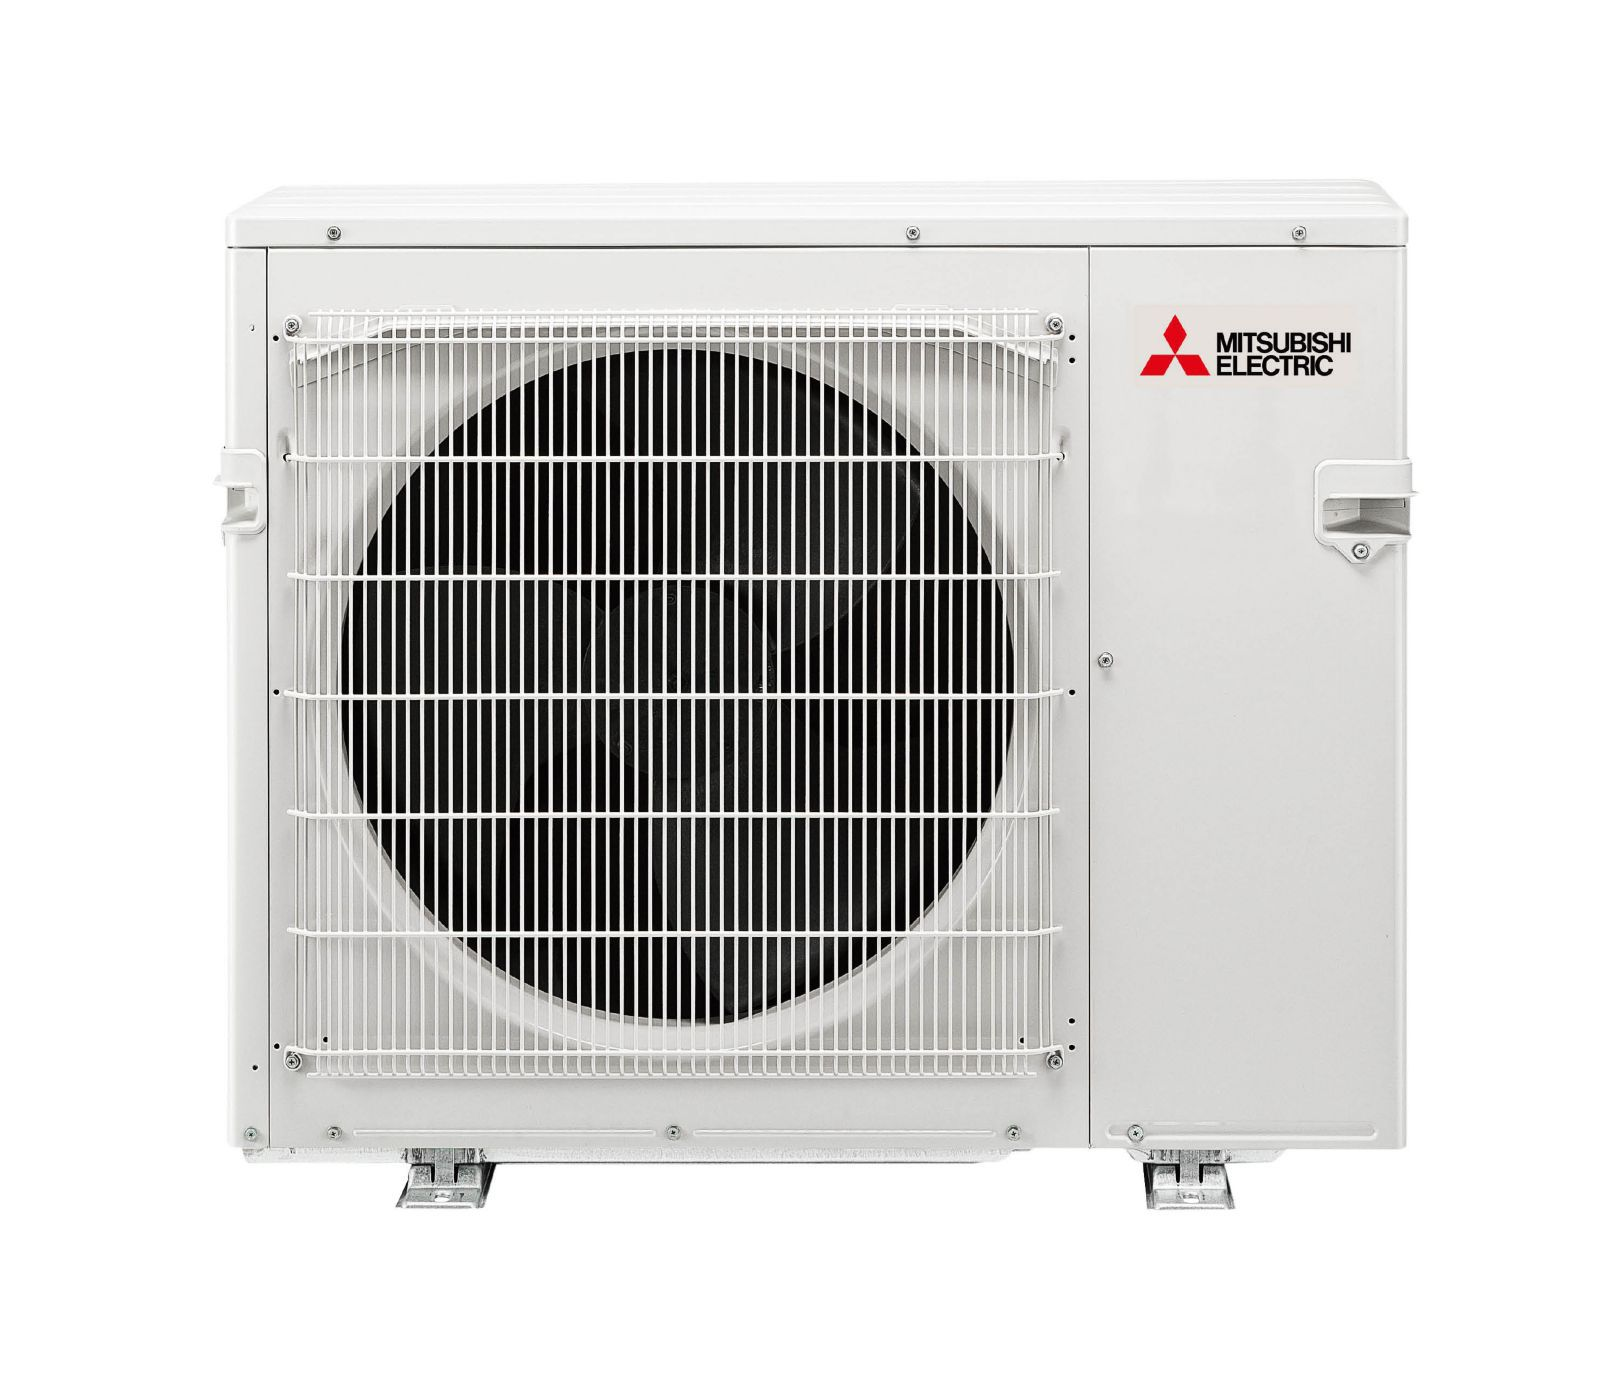 Mitsubishi Ductless Mitsubishi Ductless M Series 6000 Btu Heat Pump Wall Mounted